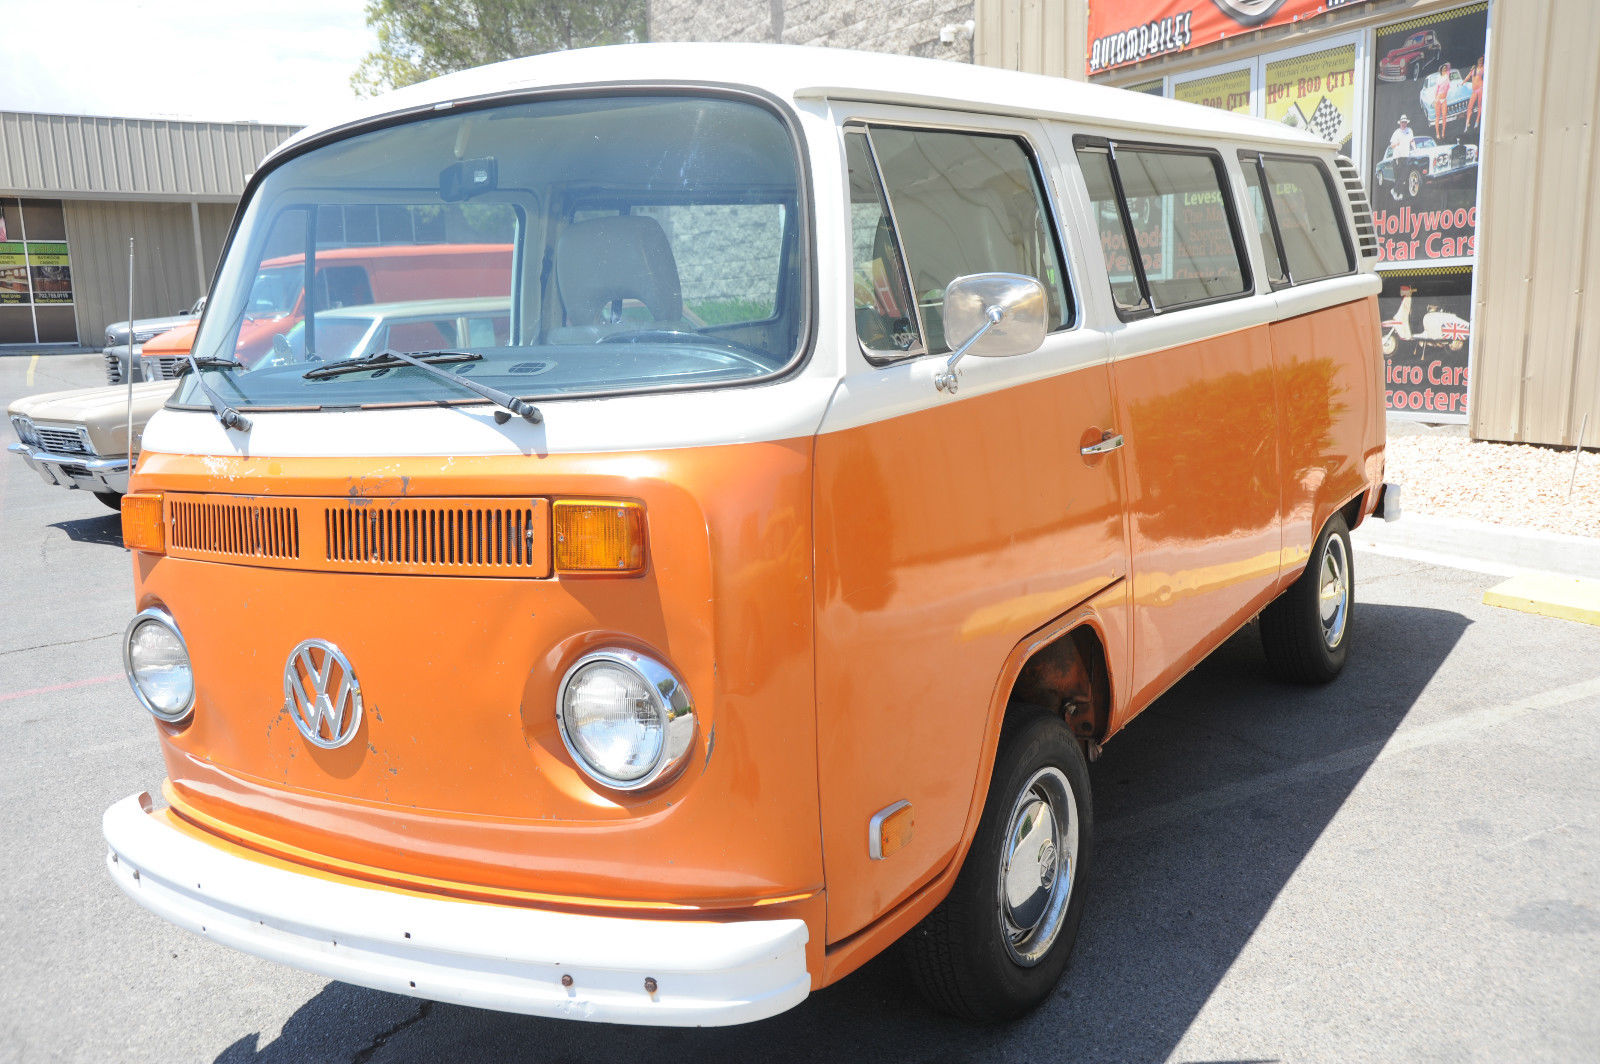 6af6ef36ec 1974 Volkswagen Bus Vanagon Bus Van Transporter Kombi - Hot Rod City ...